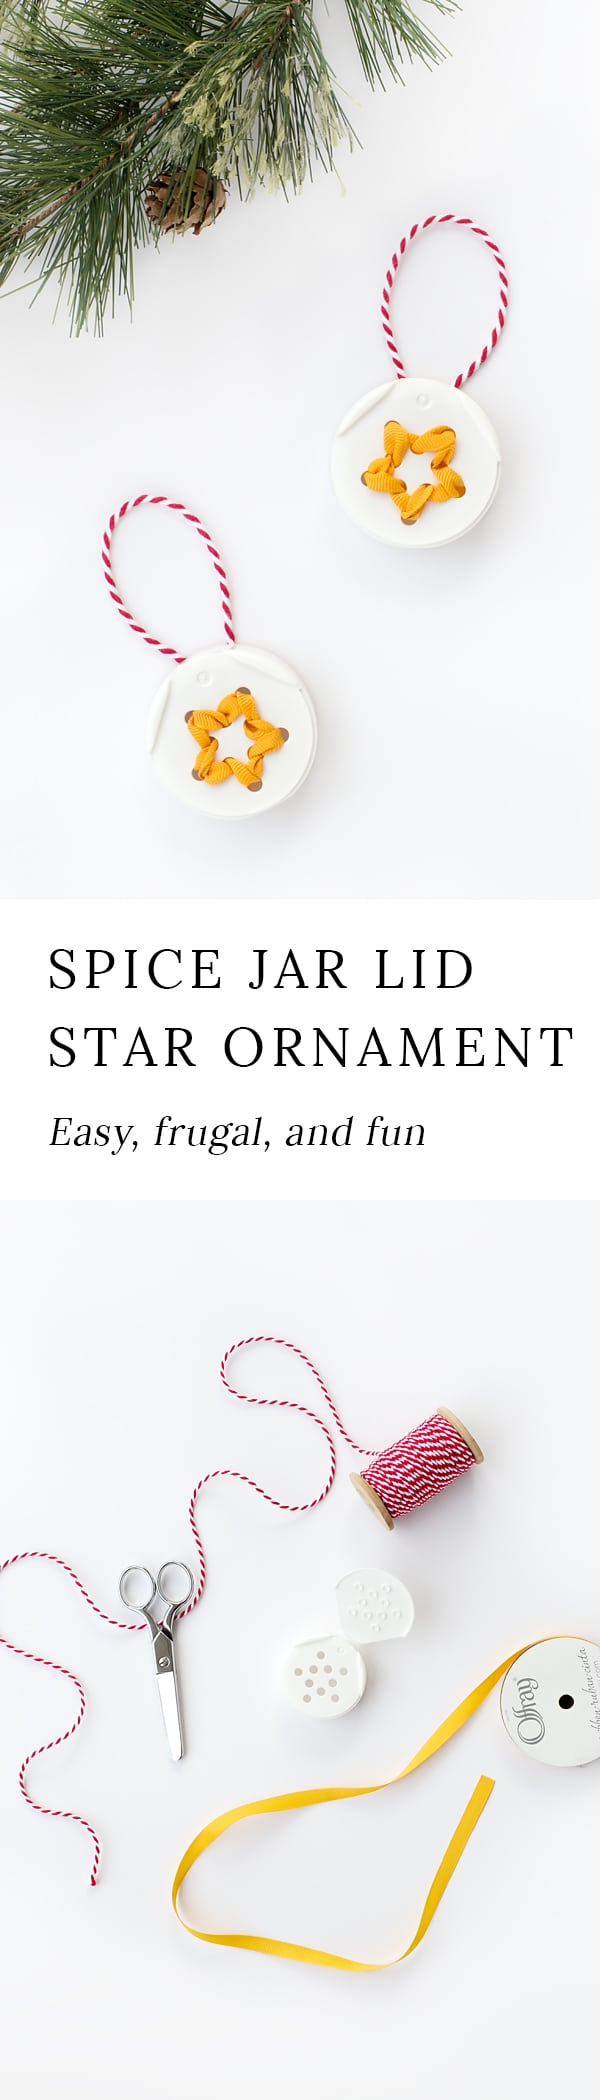 Turn trash into treasure! Kids of all ages will love creating unique Spice Jar Lid Star Ornaments from the lids of spice jars. It's perfect for Christmas!